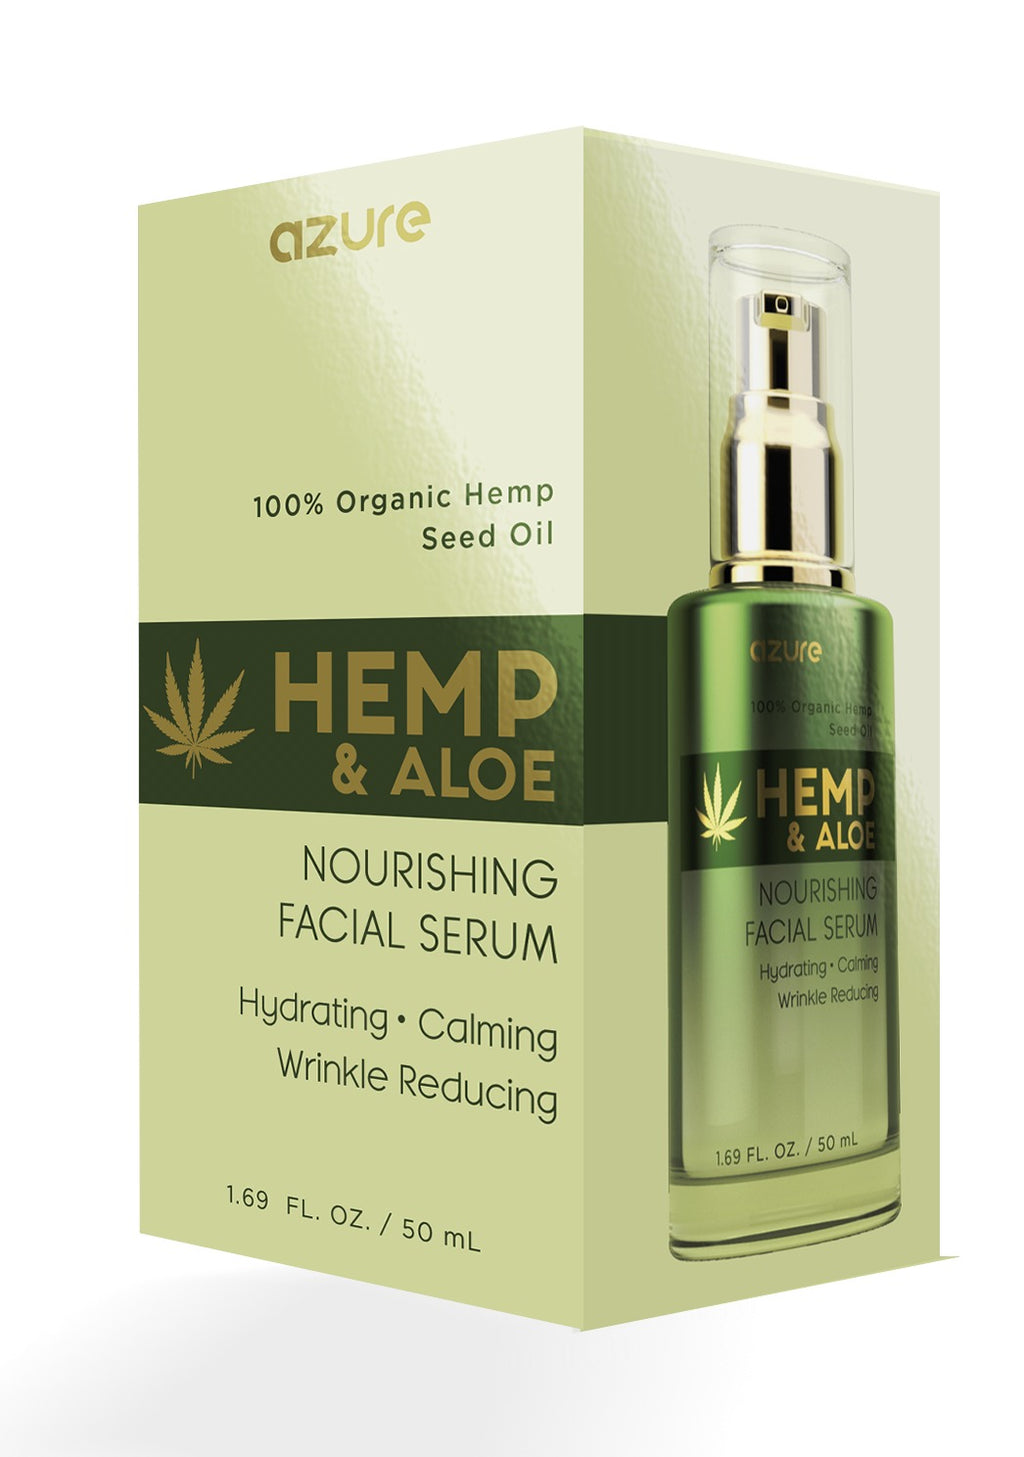 Hemp and Aloe Nourishing Facial Serum